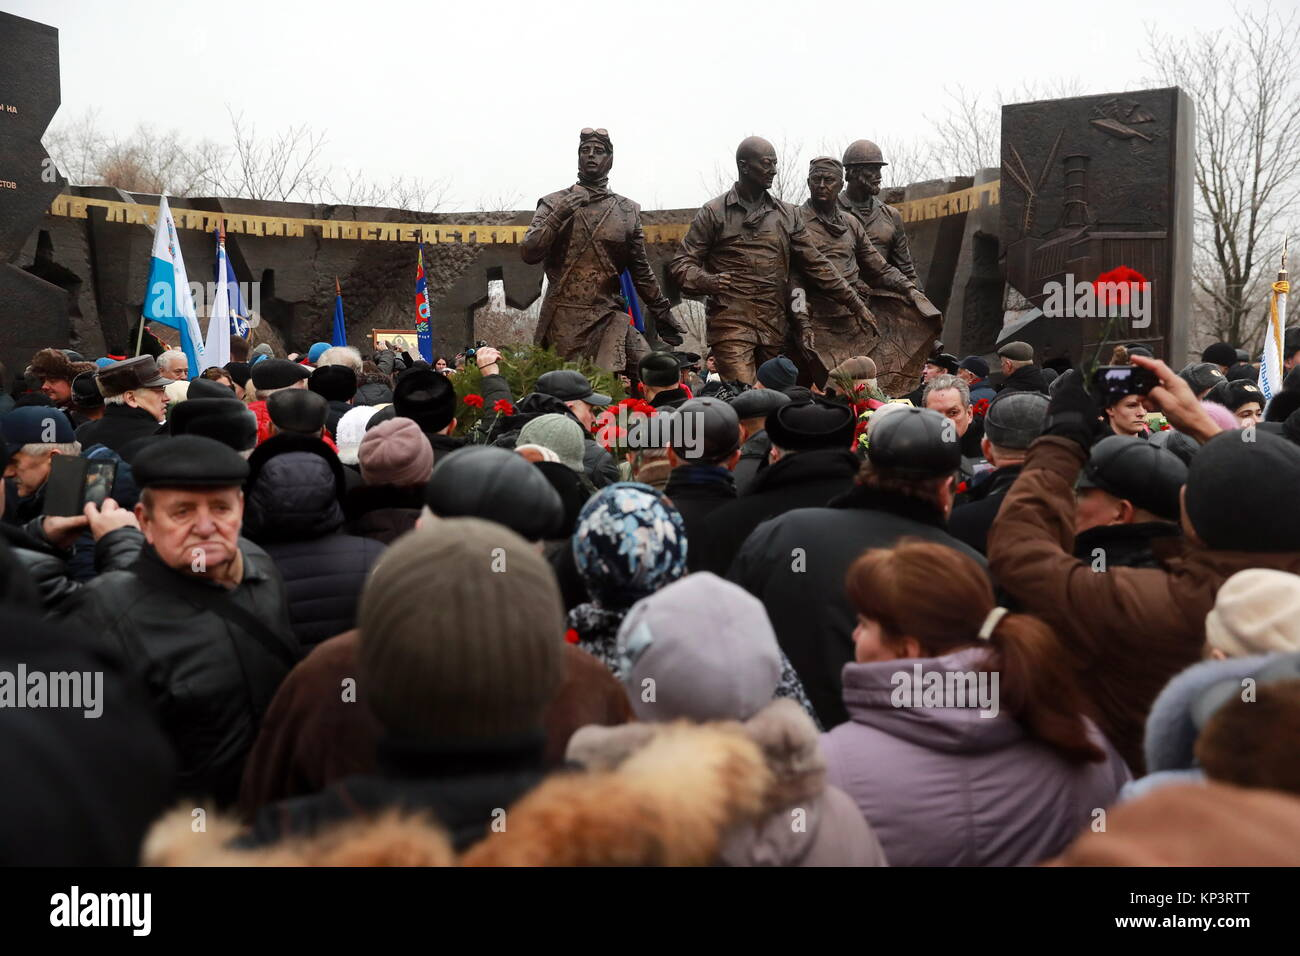 Moscow, Russia. 13th Dec, 2017. People attend a ceremony to unveil a monument to 'Chernobyl liquidators', - Stock Image